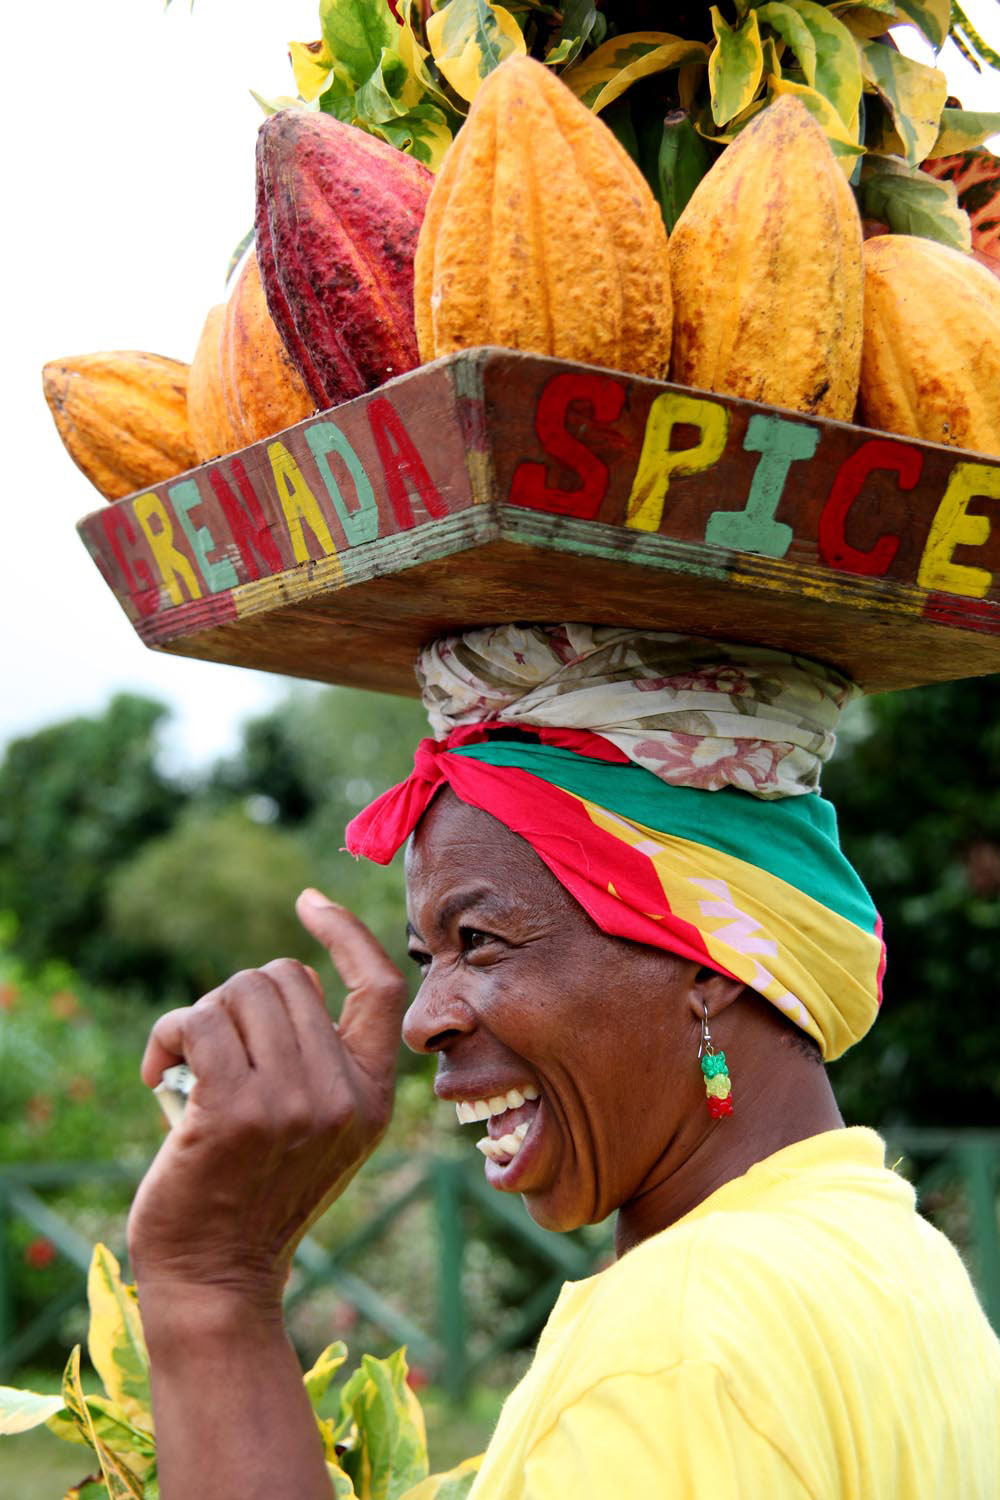 The flavour and the friendly spirit of Grenada. Photograph by Oscar C. Williams/Shutterstock.com